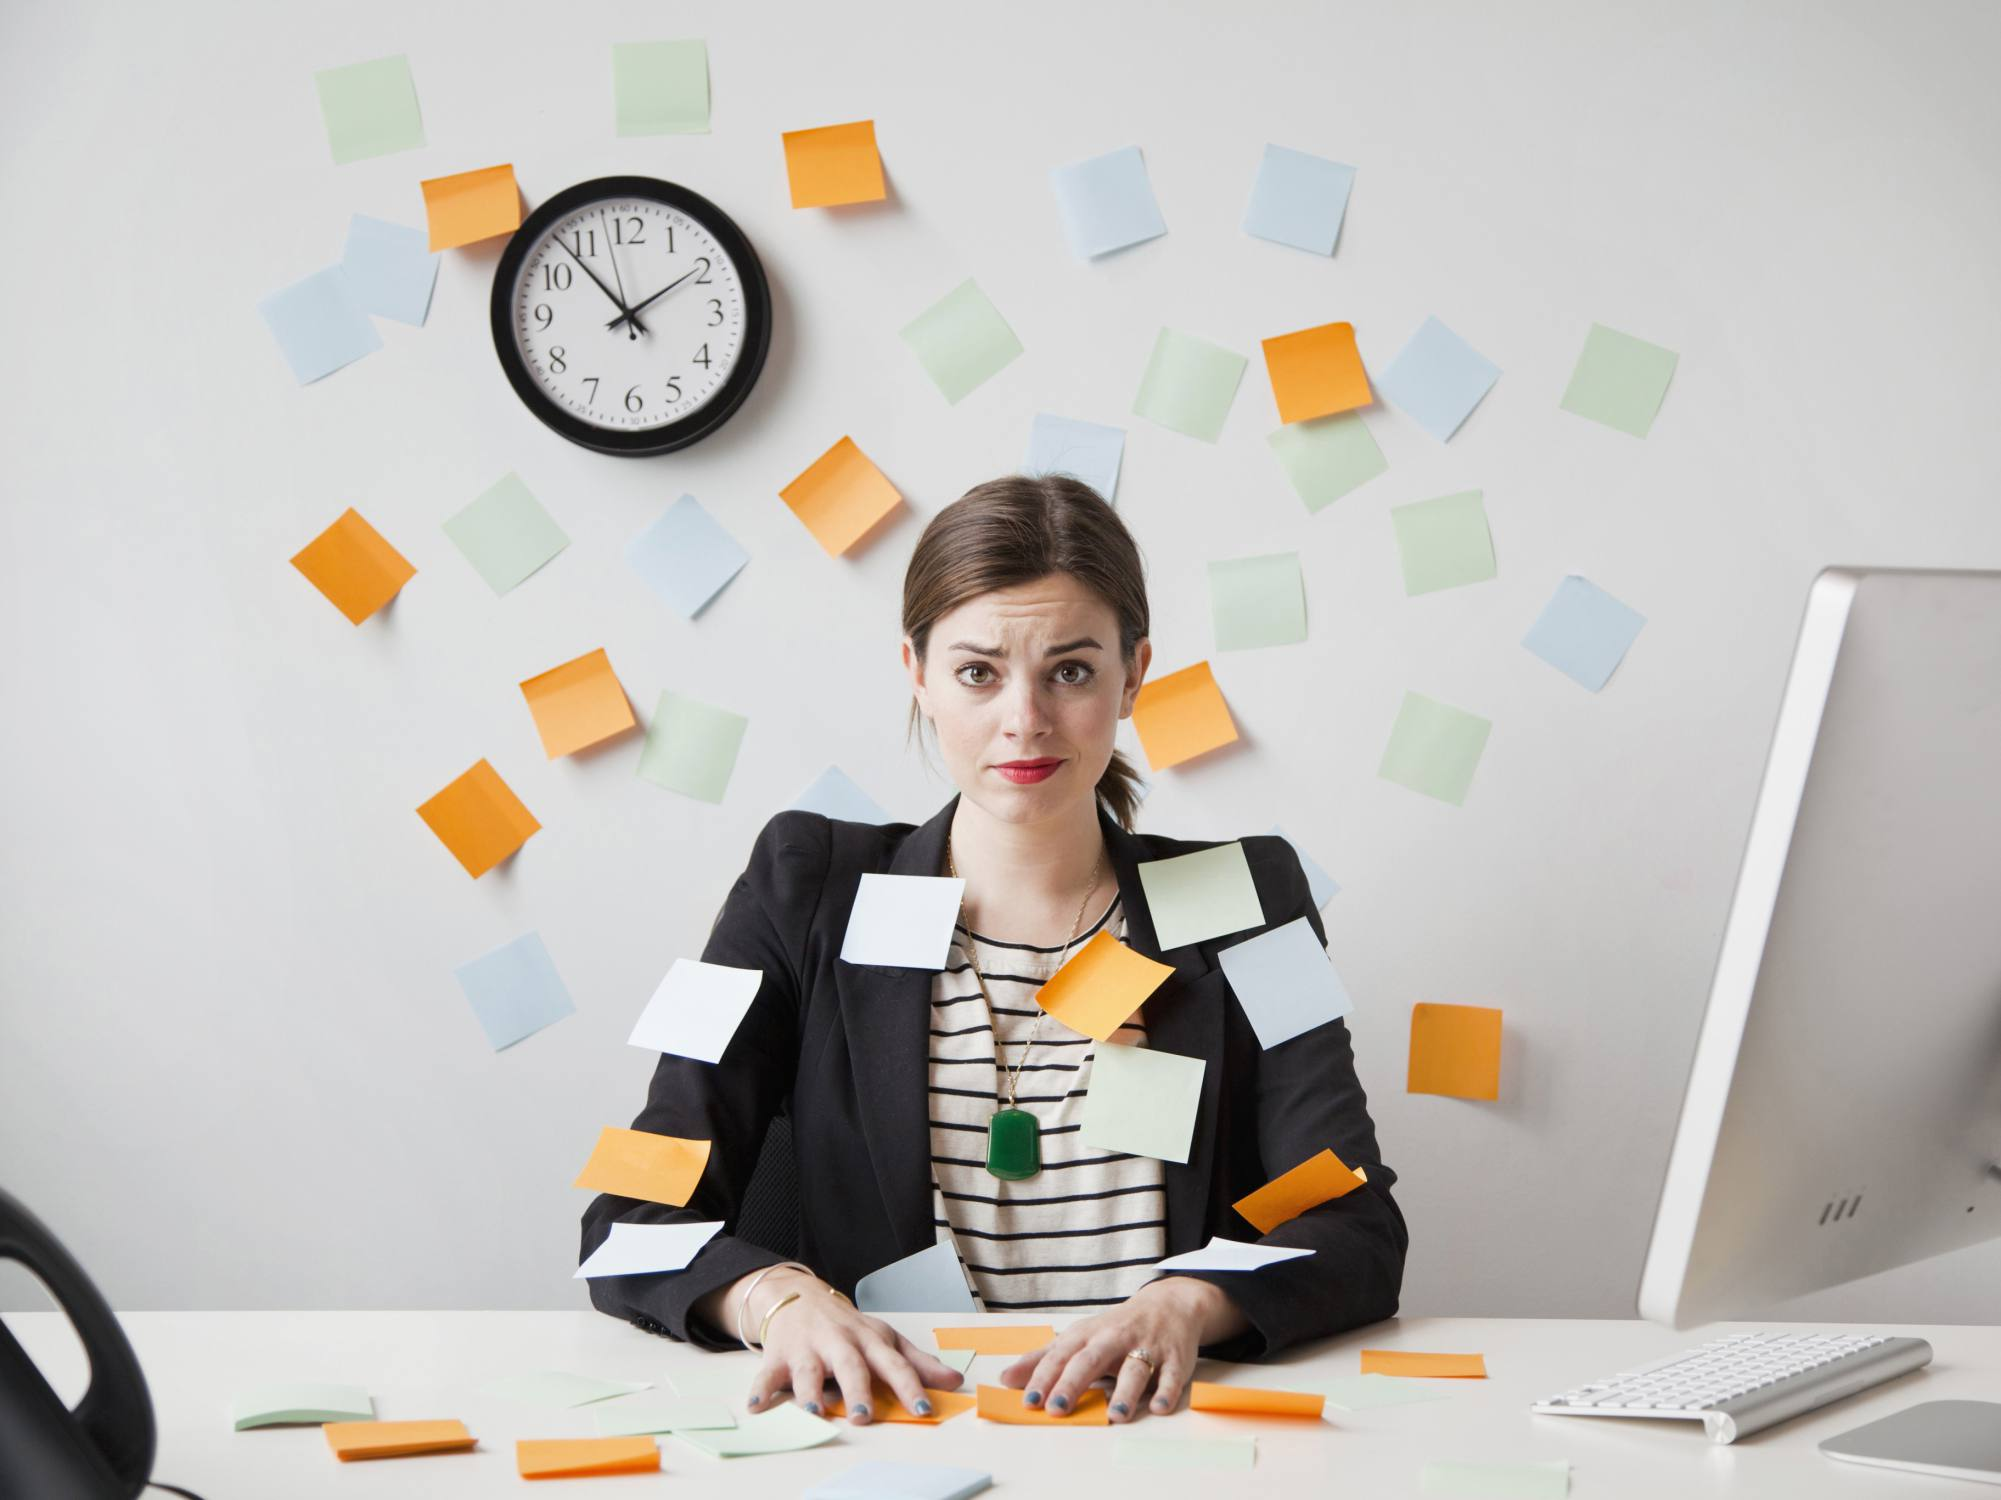 Stressed woman with sticky notes all over her and her office